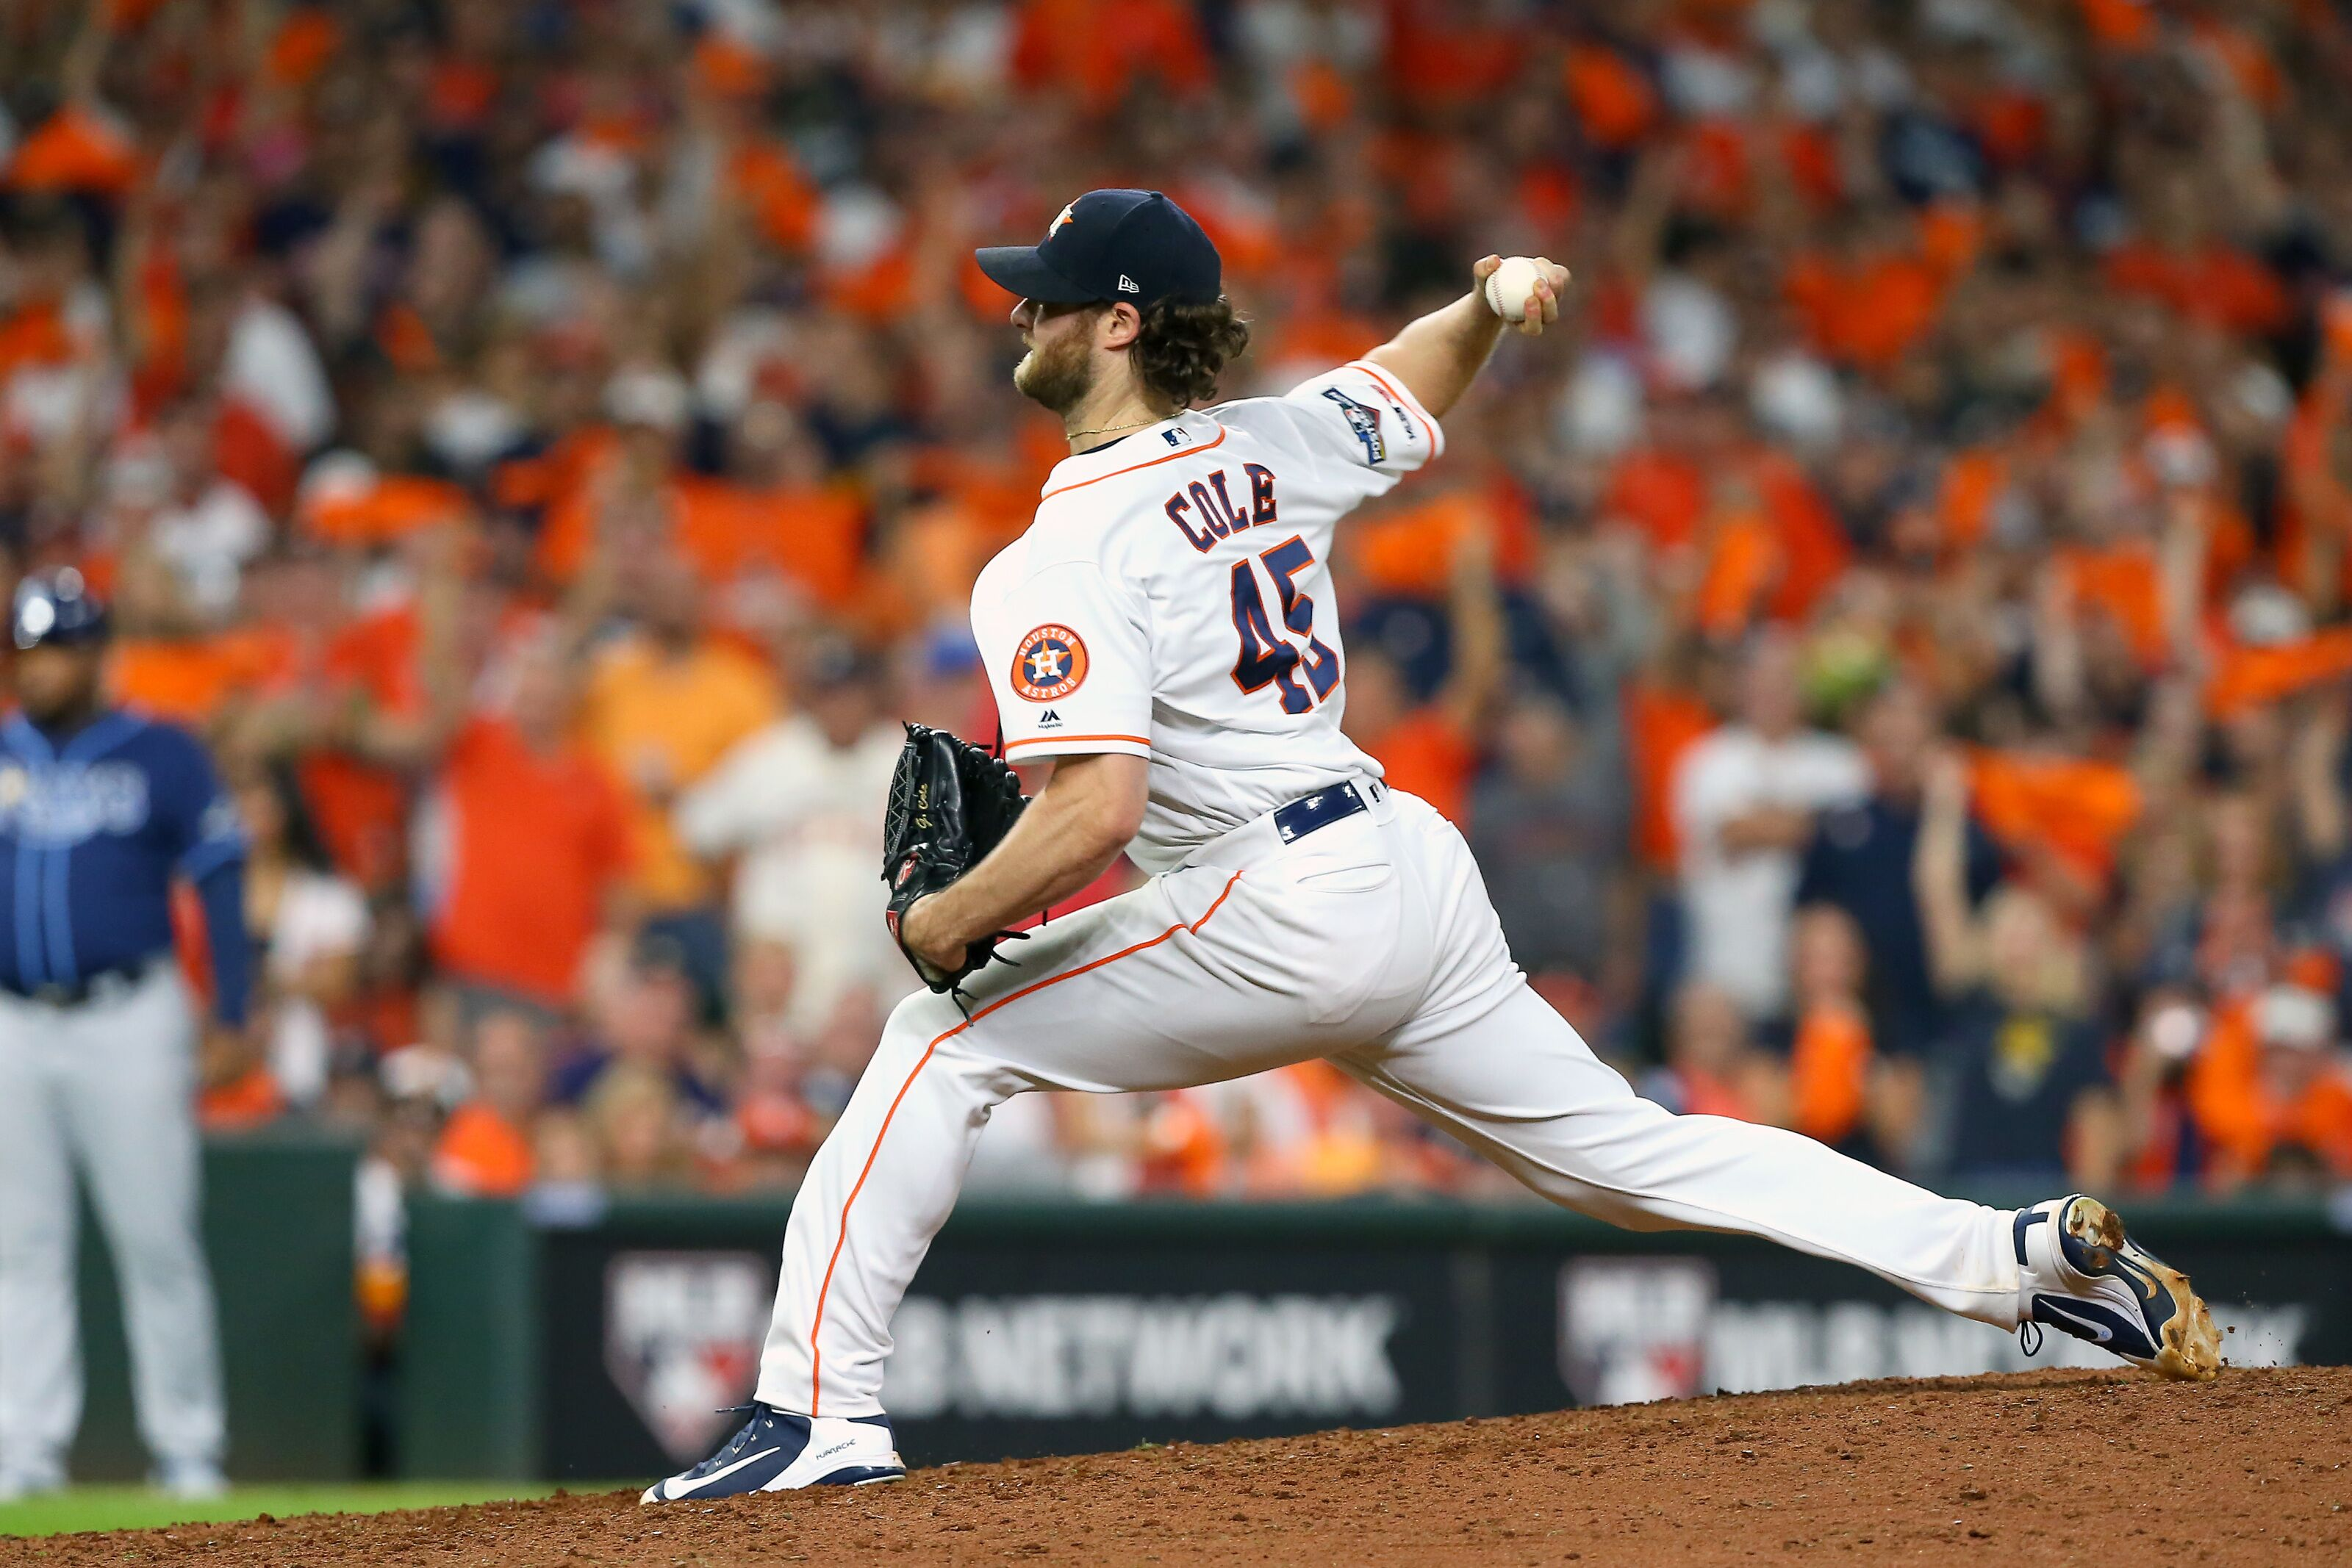 Chicago White Sox: Gerrit Cole would be franchise-changing signing